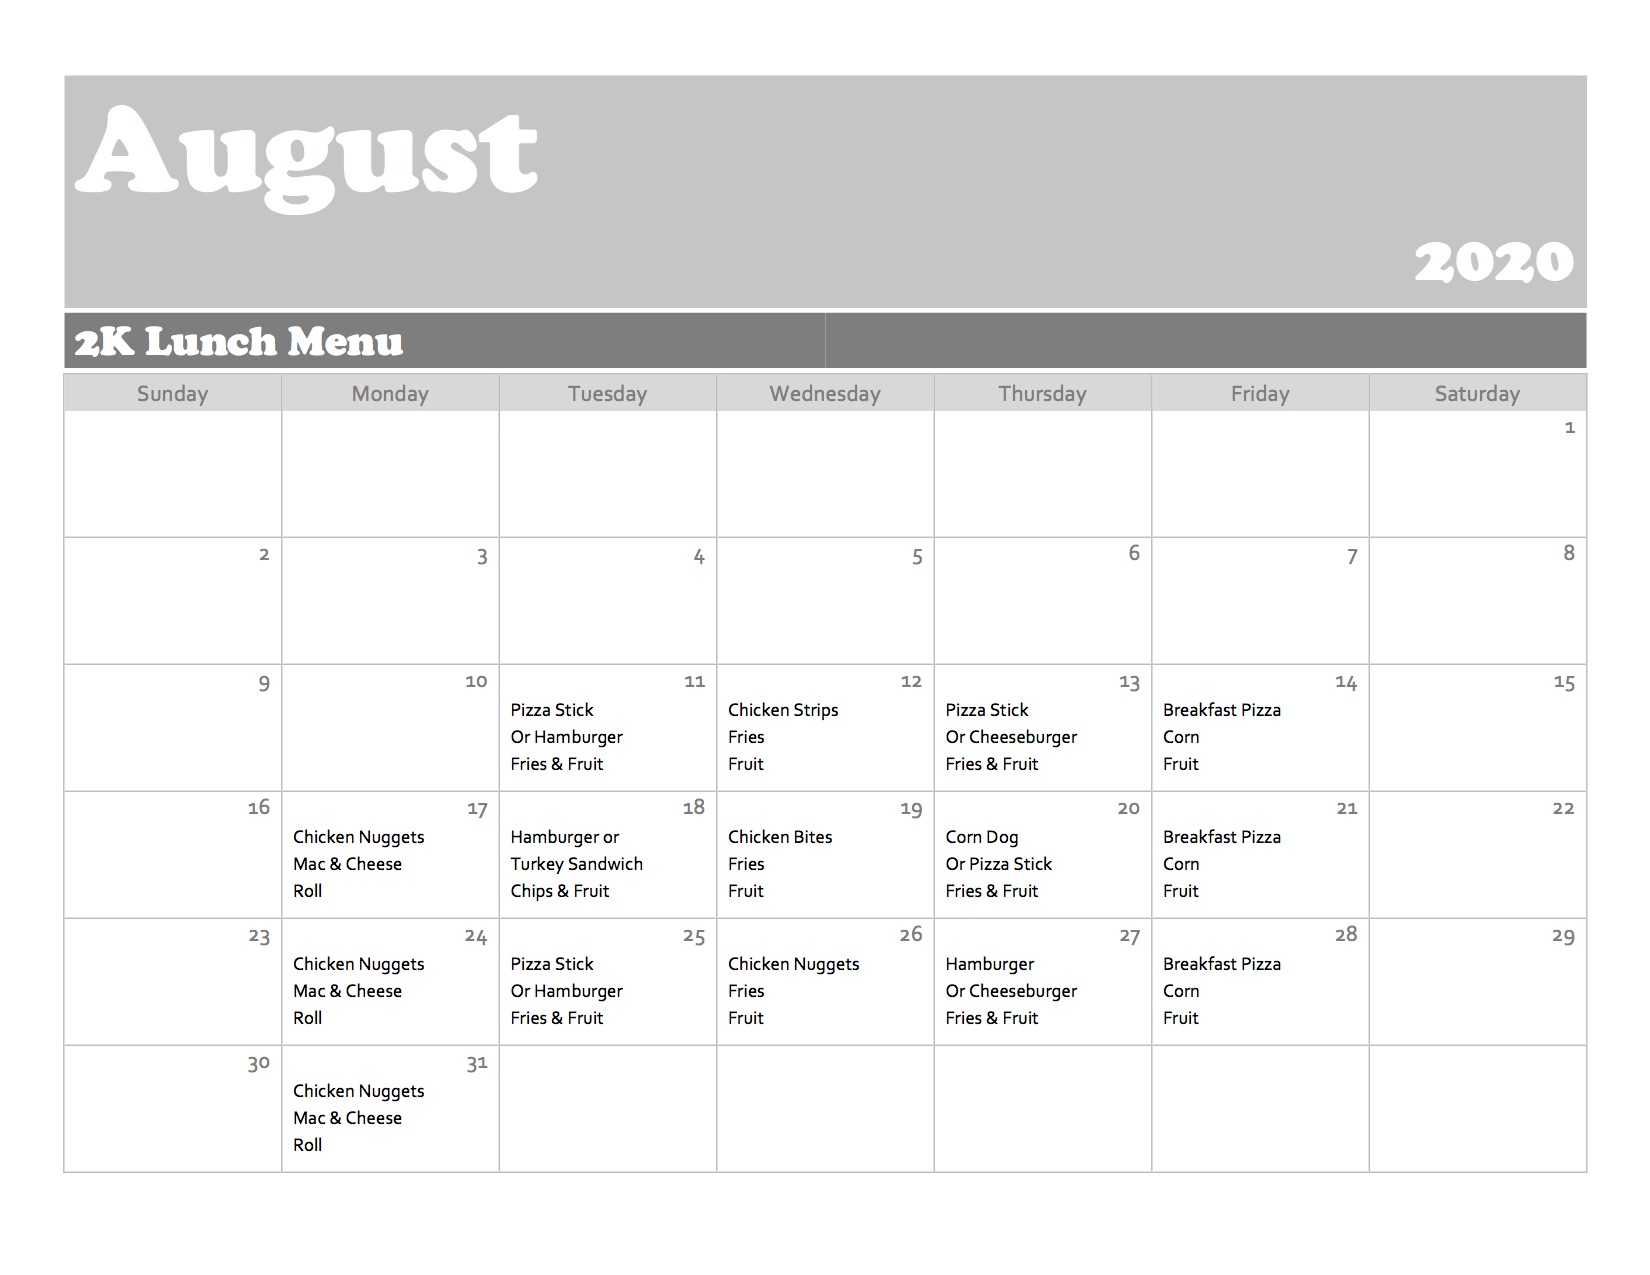 August Lunch Menu - 2K